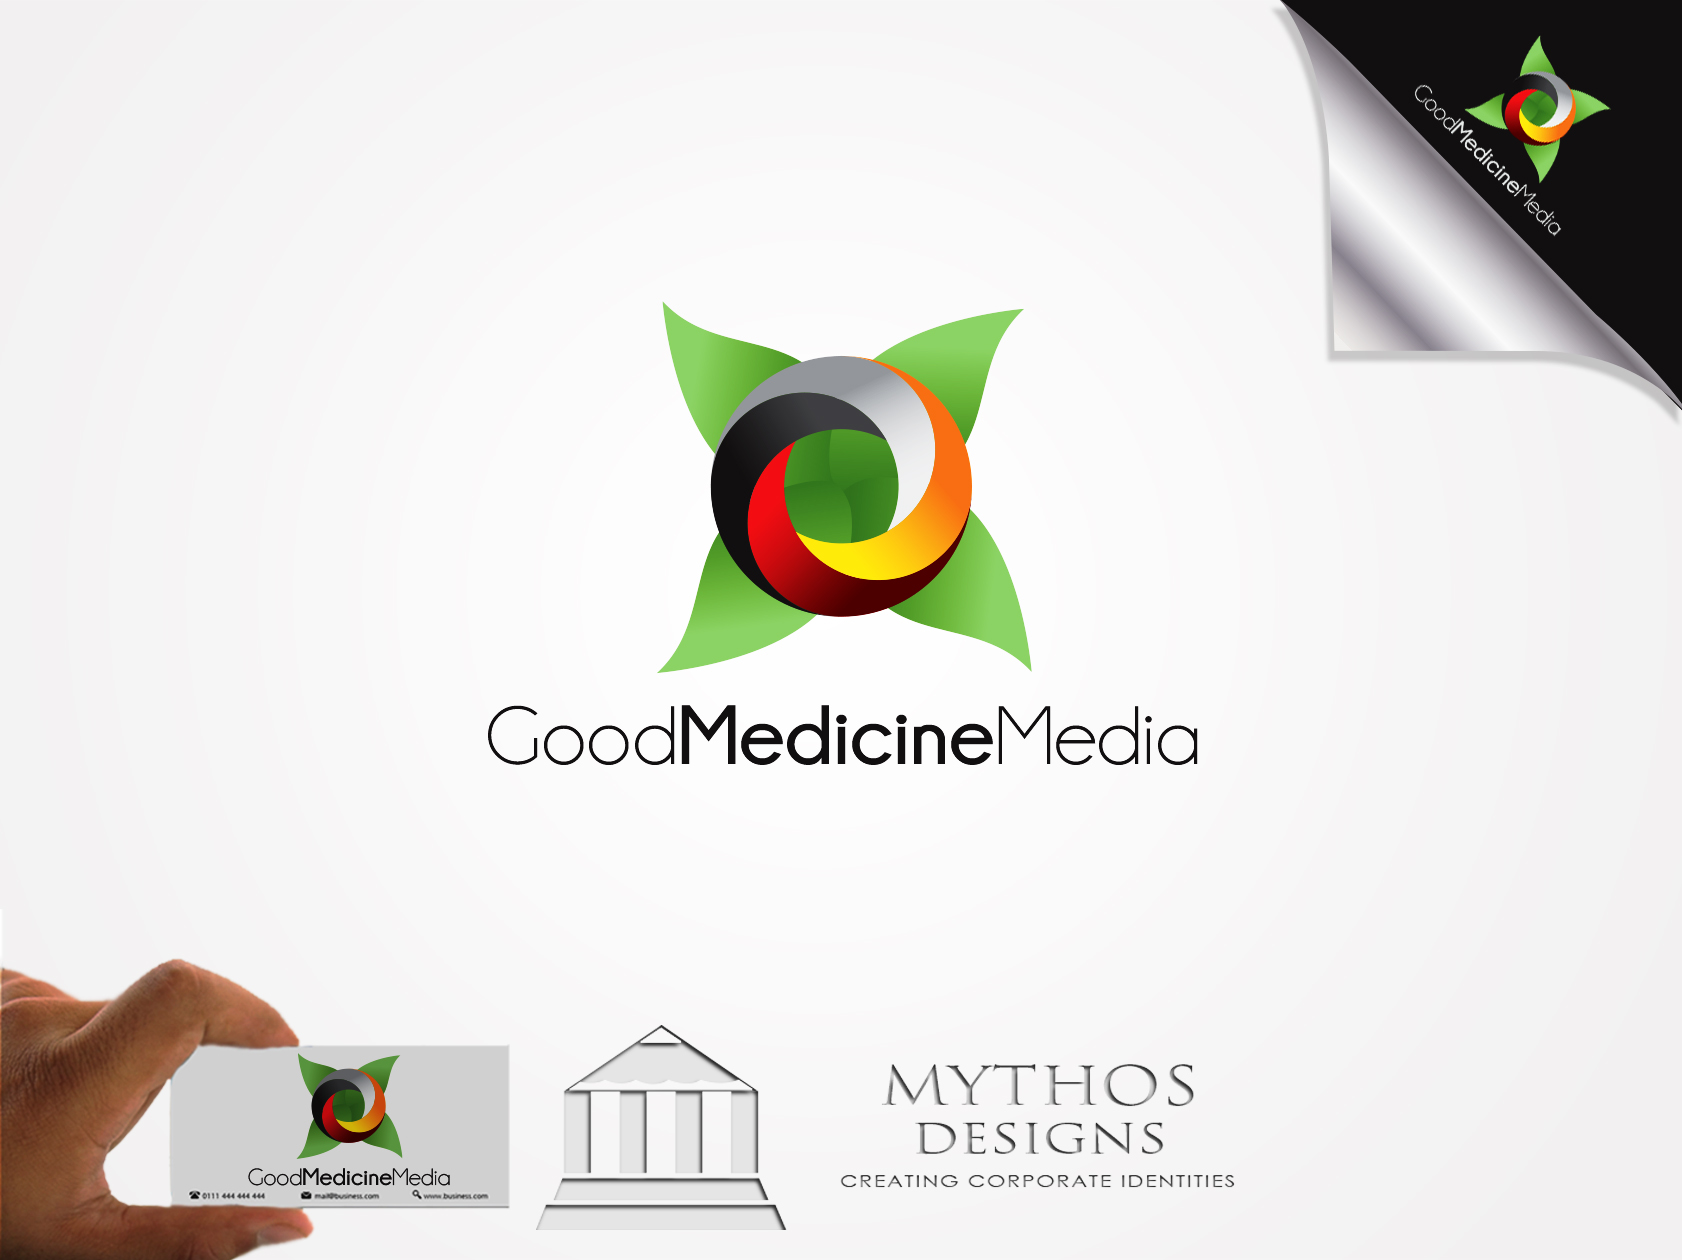 Logo Design by Mythos Designs - Entry No. 234 in the Logo Design Contest Good Medicine Media Logo Design.